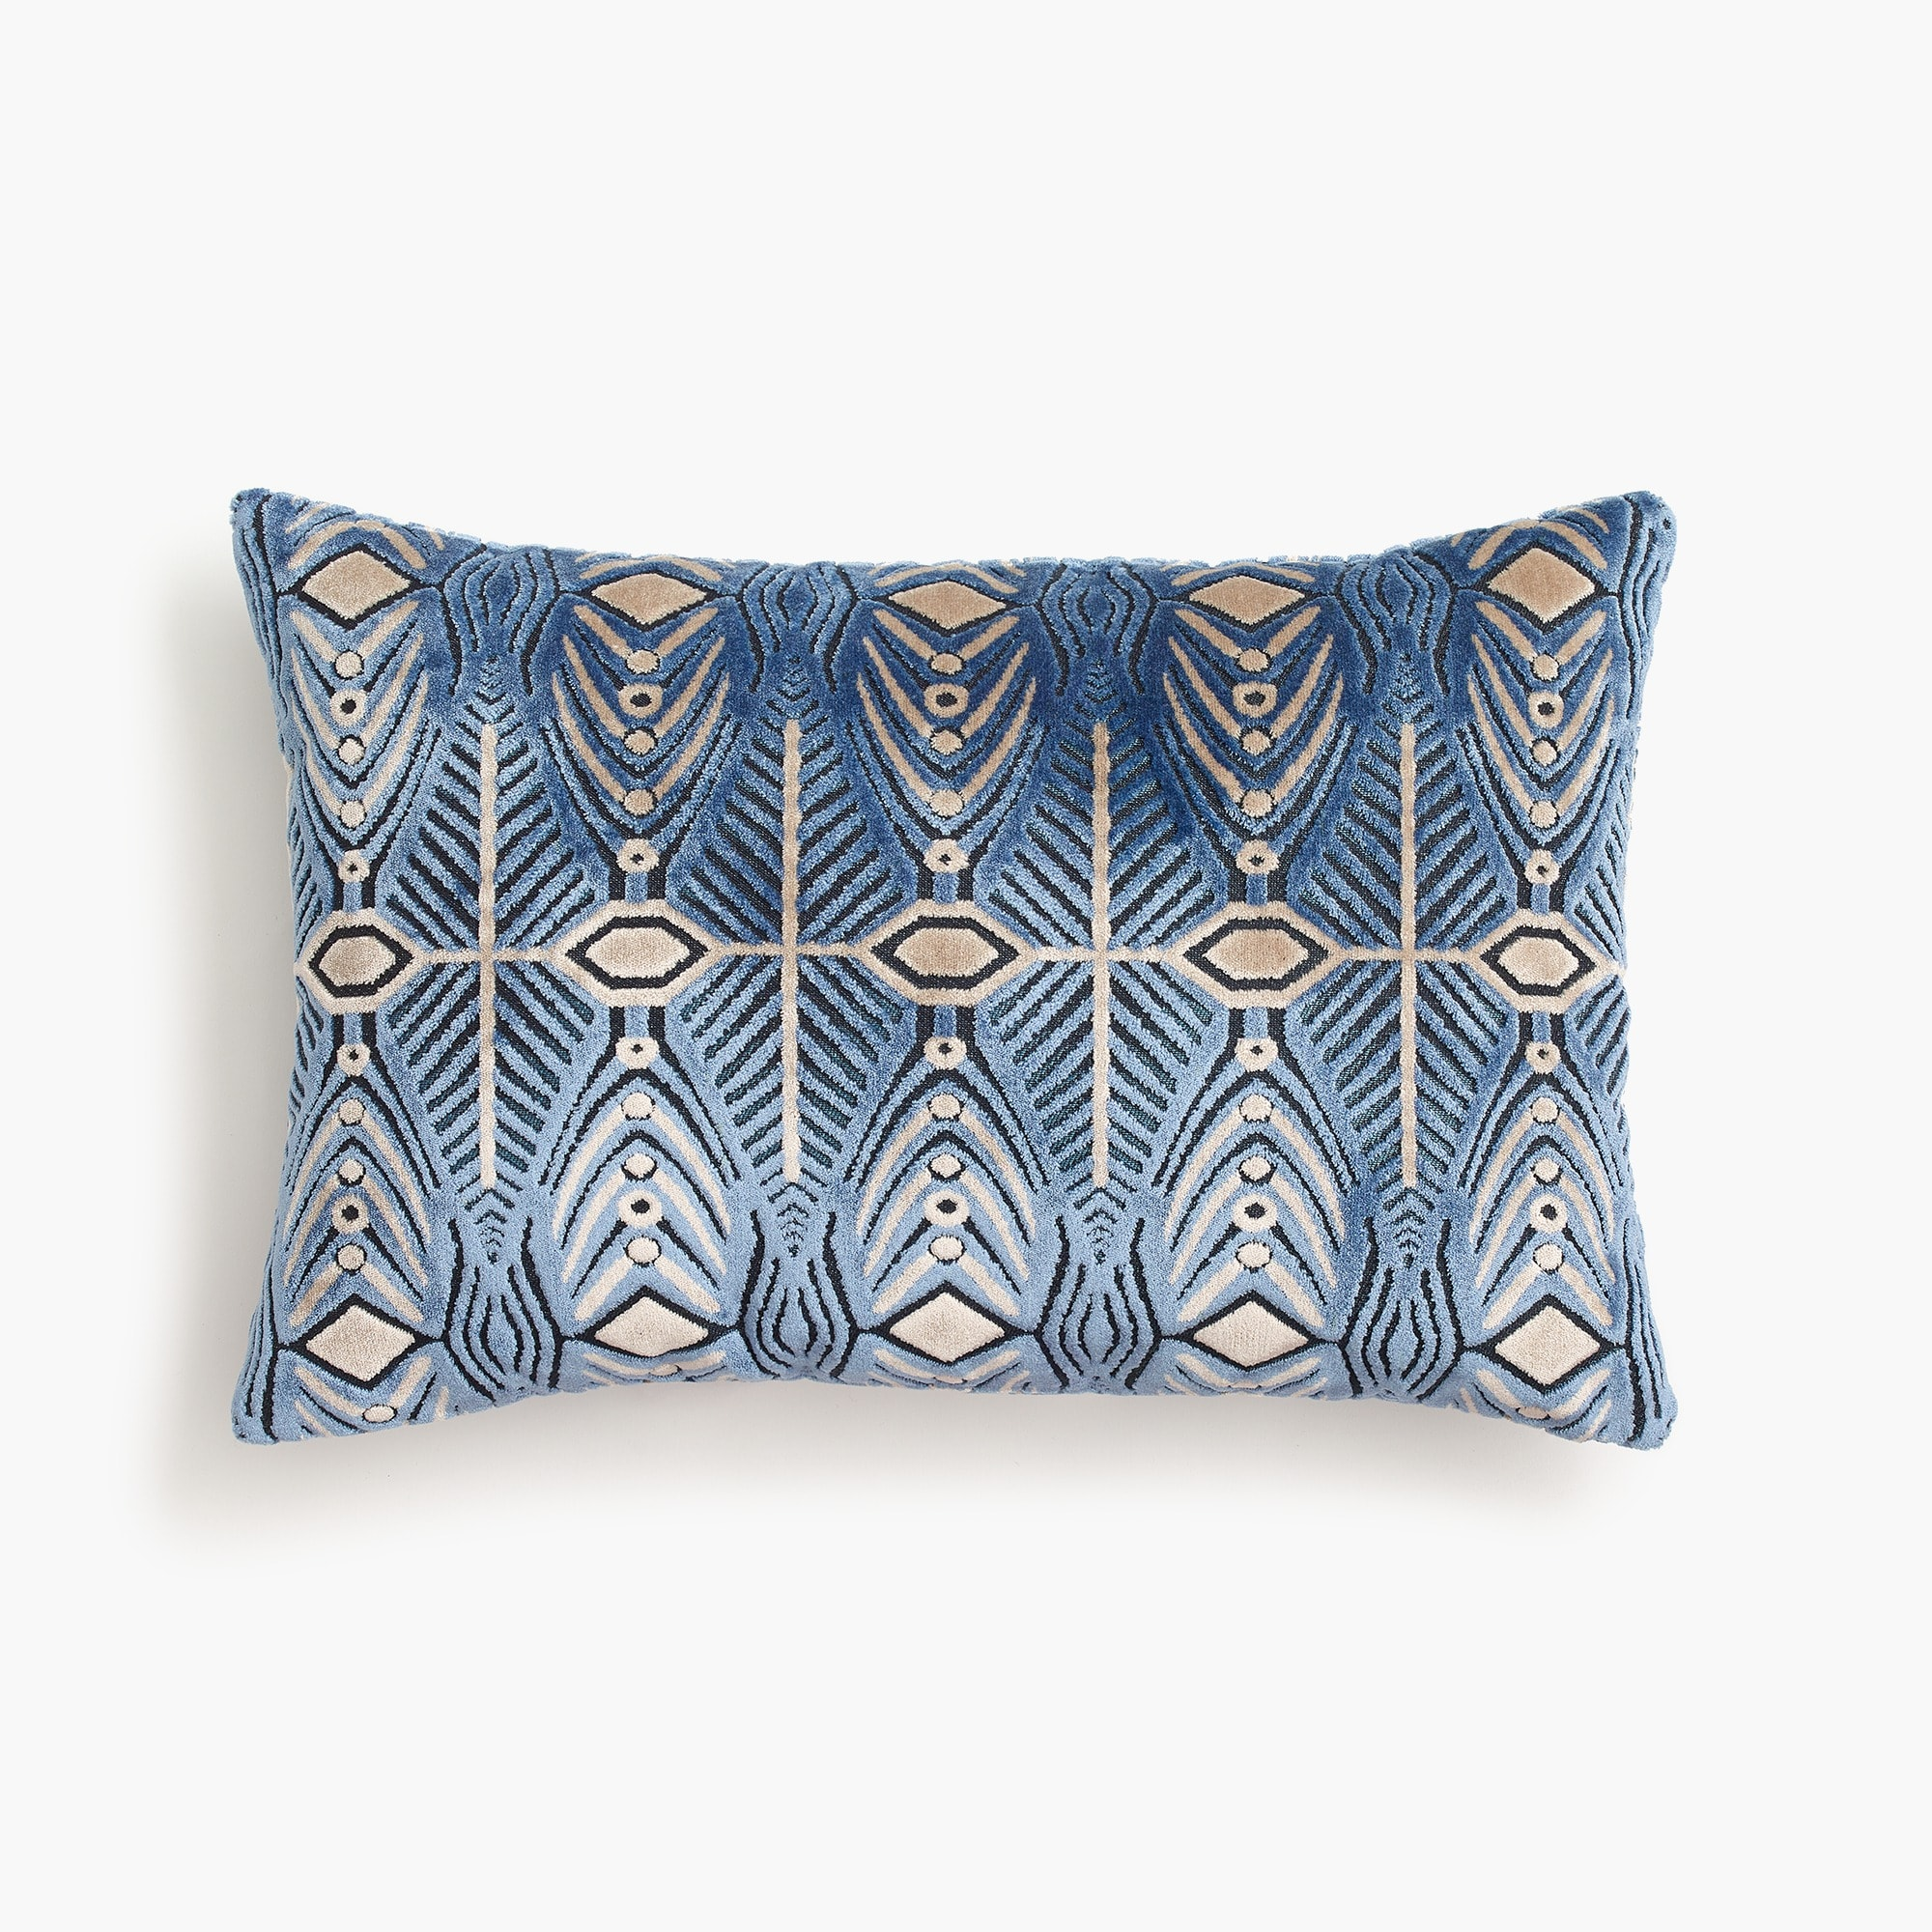 mens Compono velvet pillow in fishbone pattern